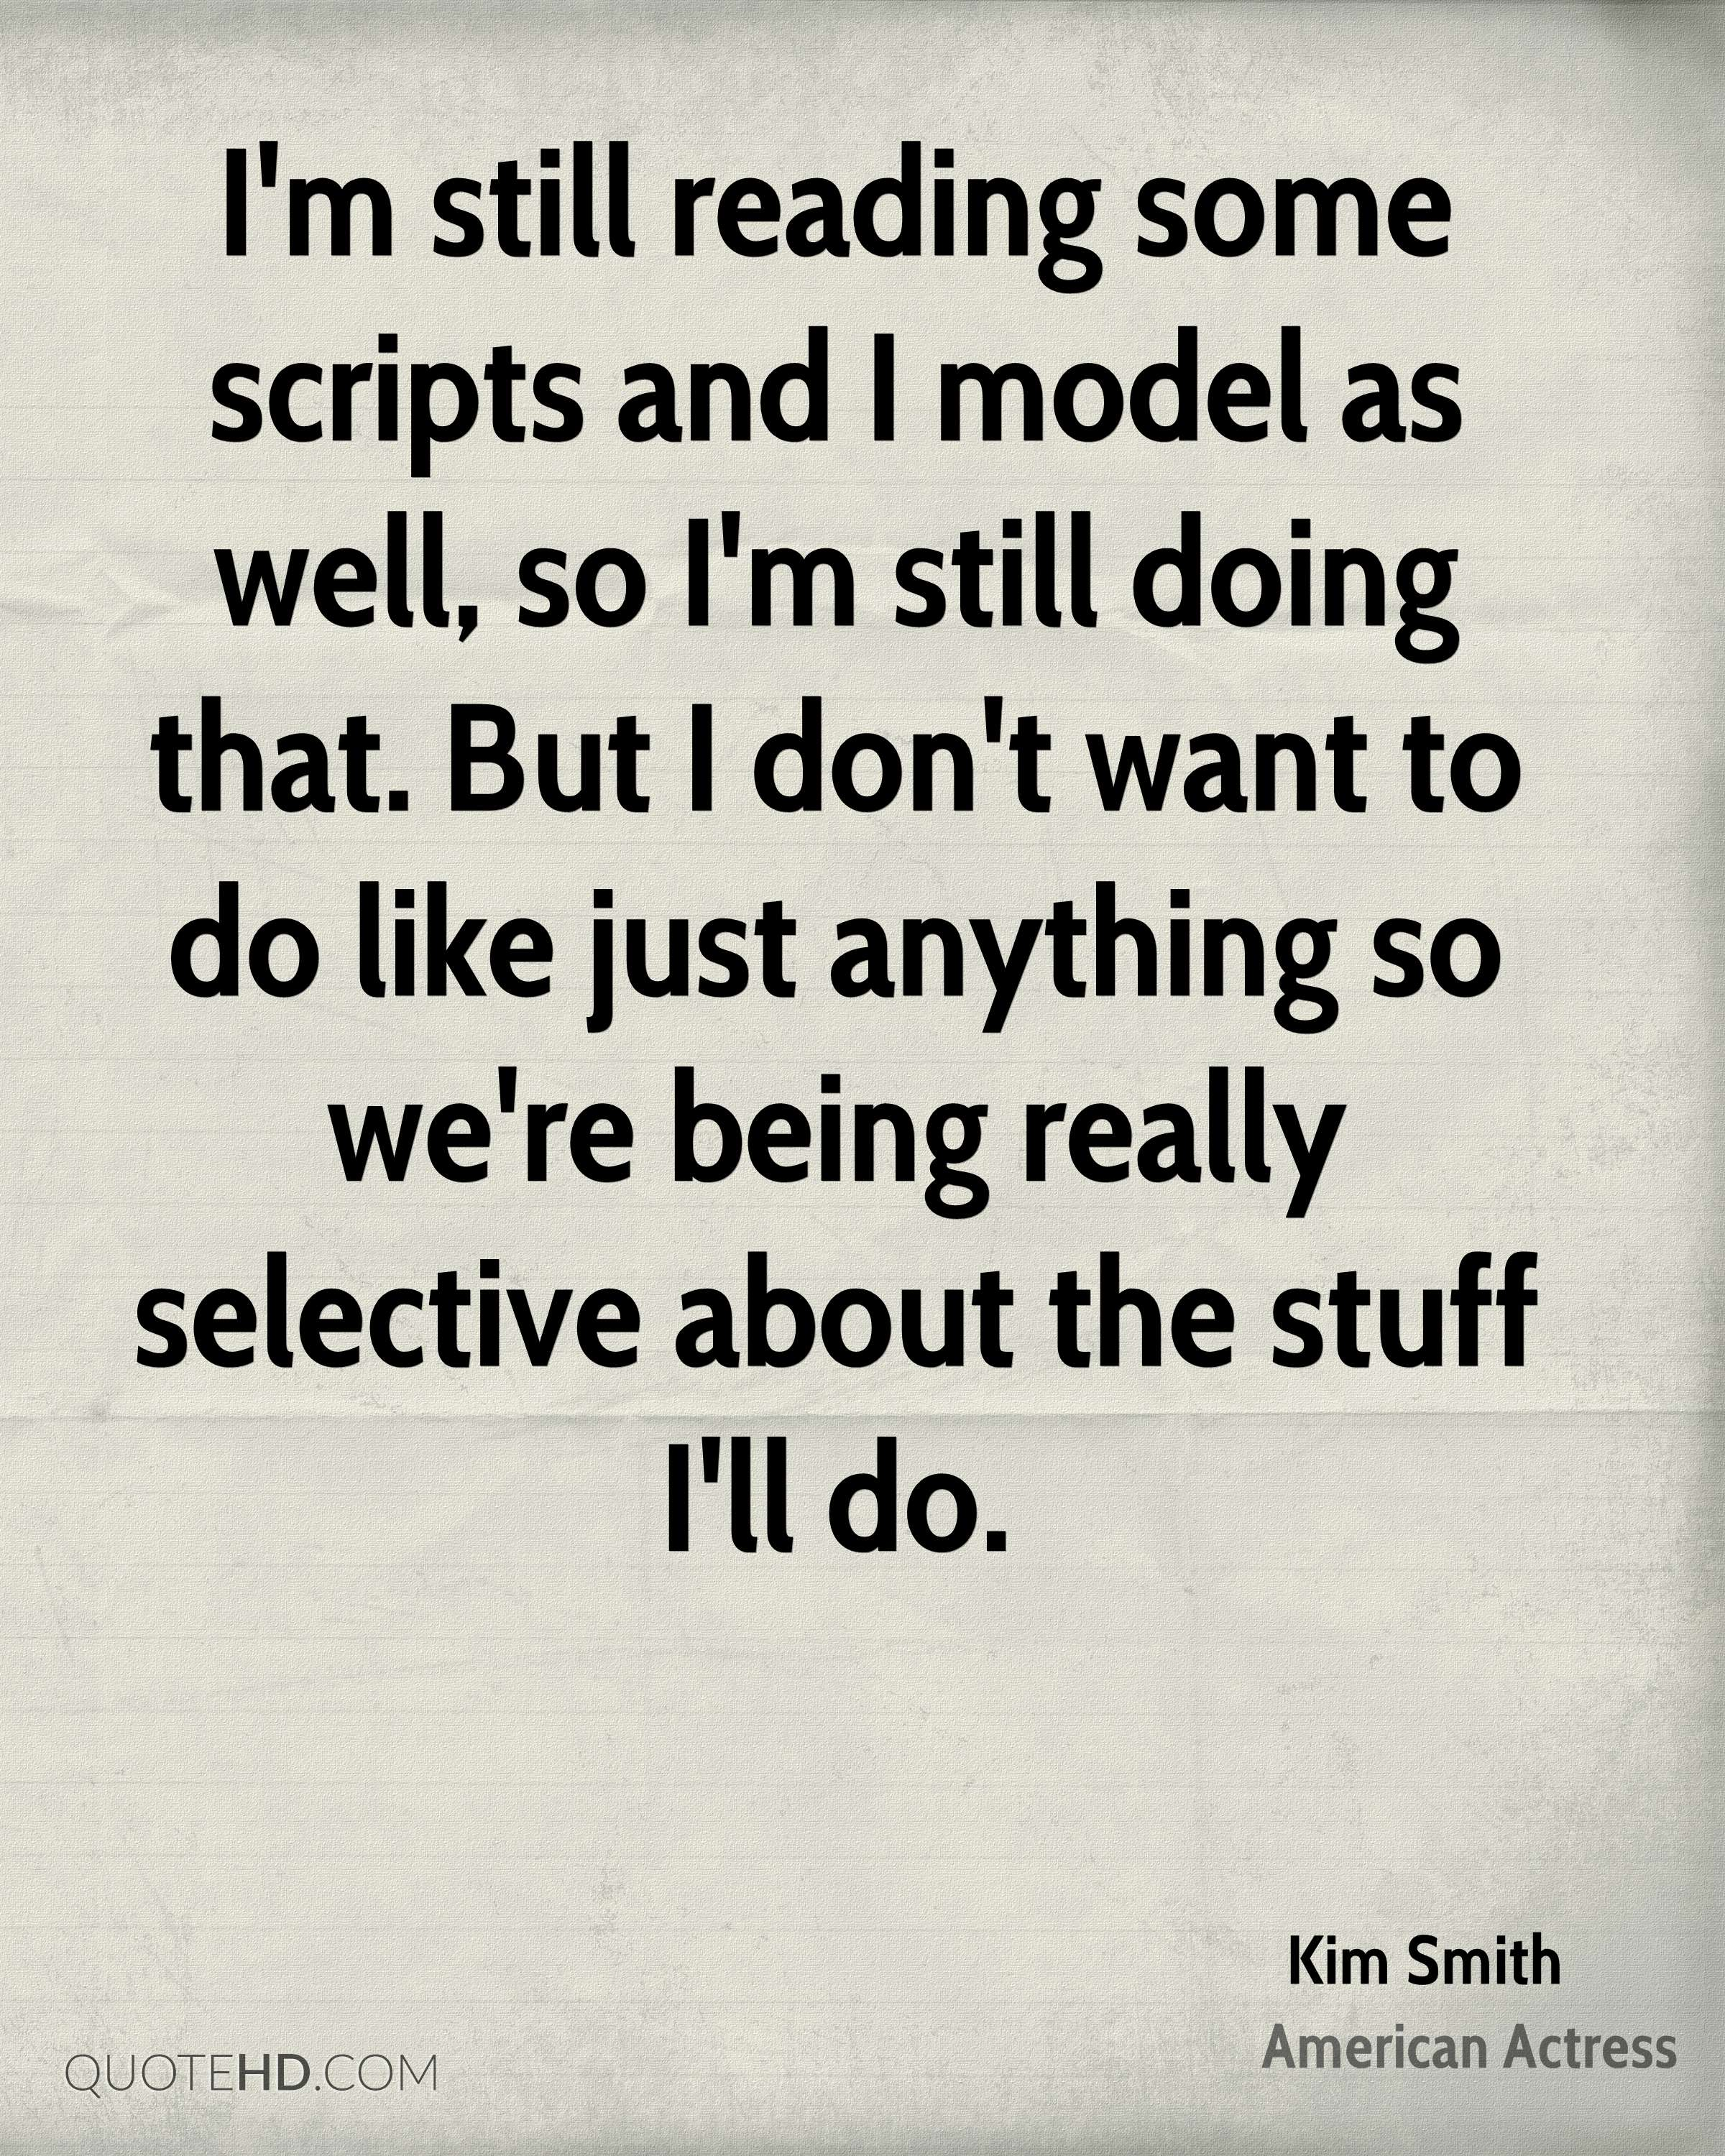 I'm still reading some scripts and I model as well, so I'm still doing that. But I don't want to do like just anything so we're being really selective about the stuff I'll do.